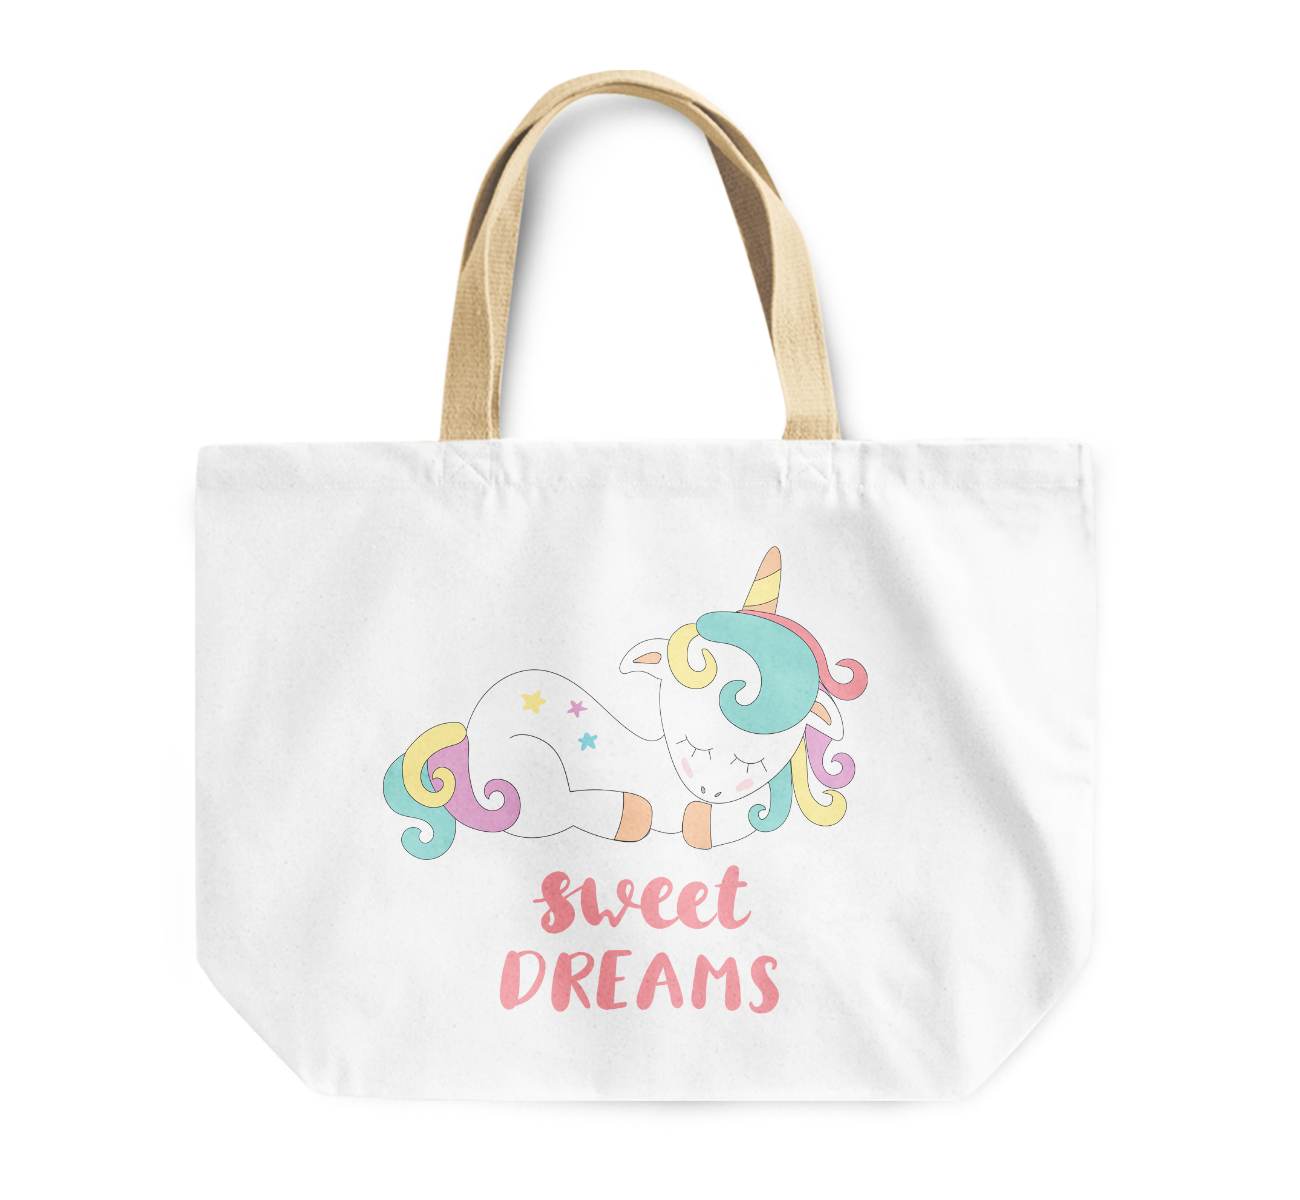 Tote Bag Sweet Dreams Colorful Rainbow Unicorn Reusable Shopping Bag By Loud Universe